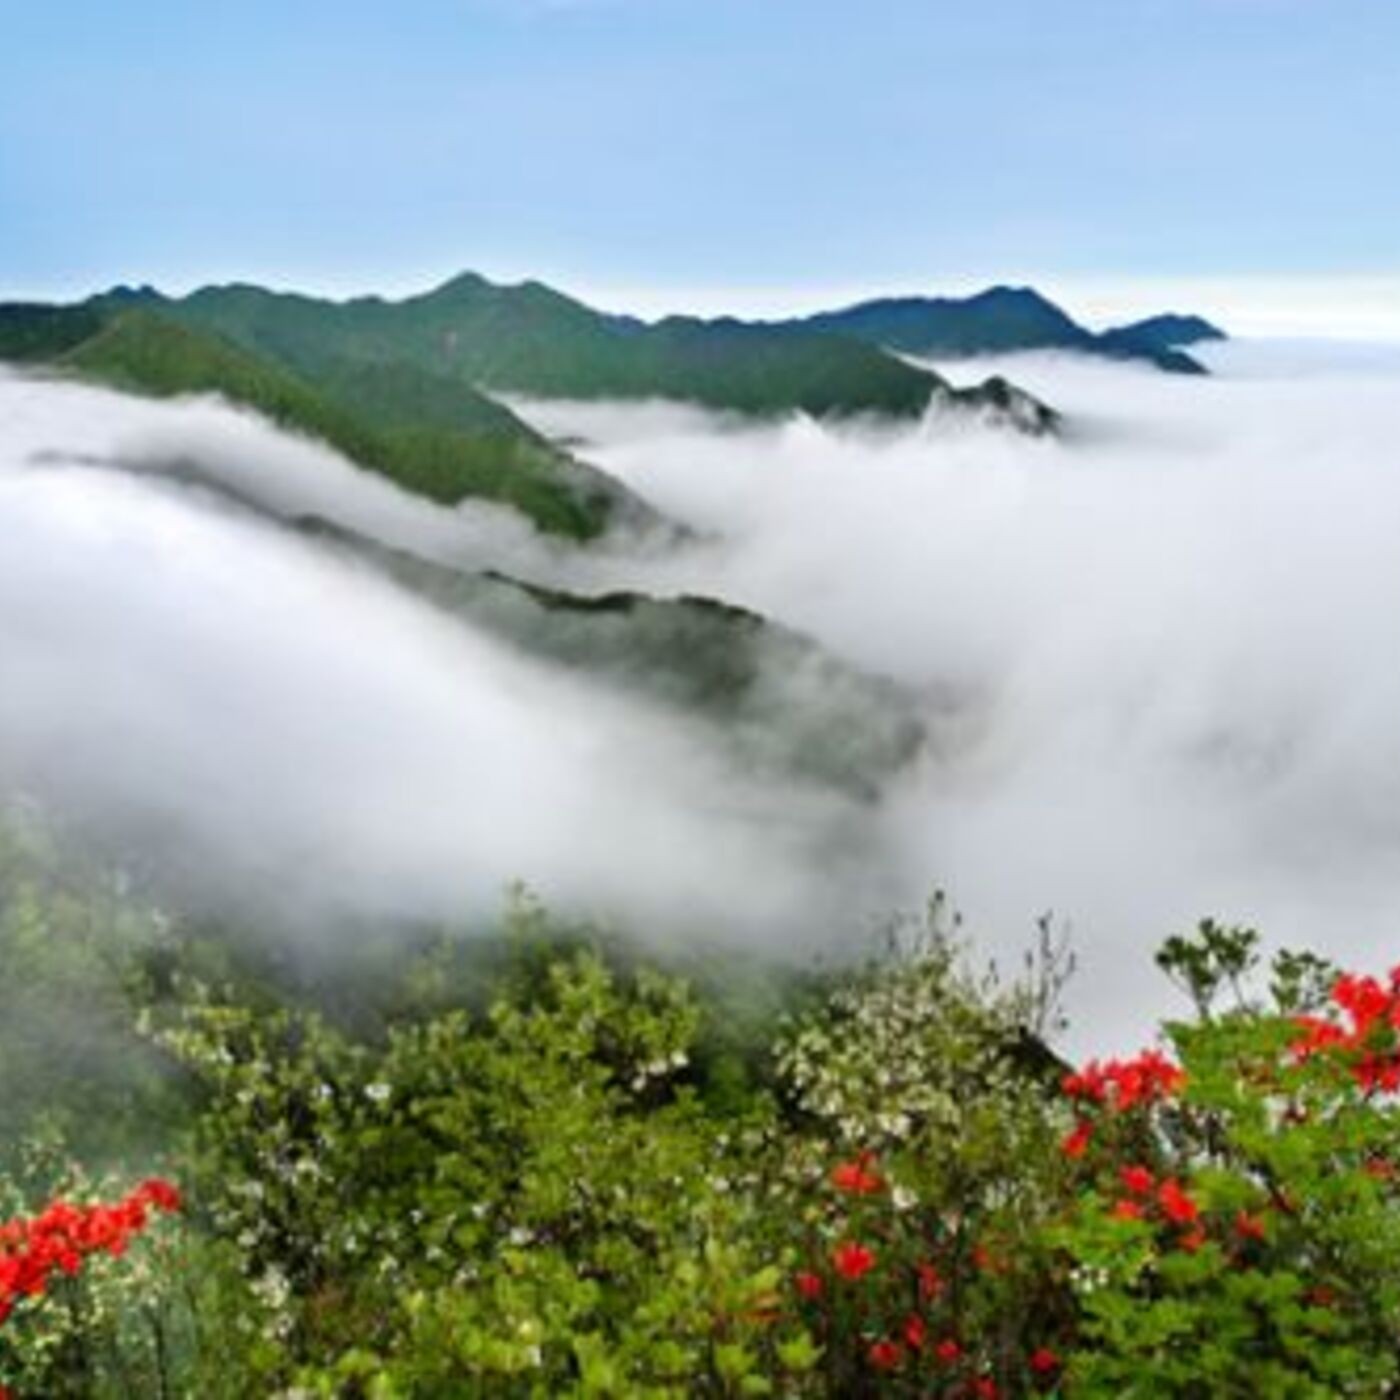 Background on Society and Economy in the Jinggang Mountains